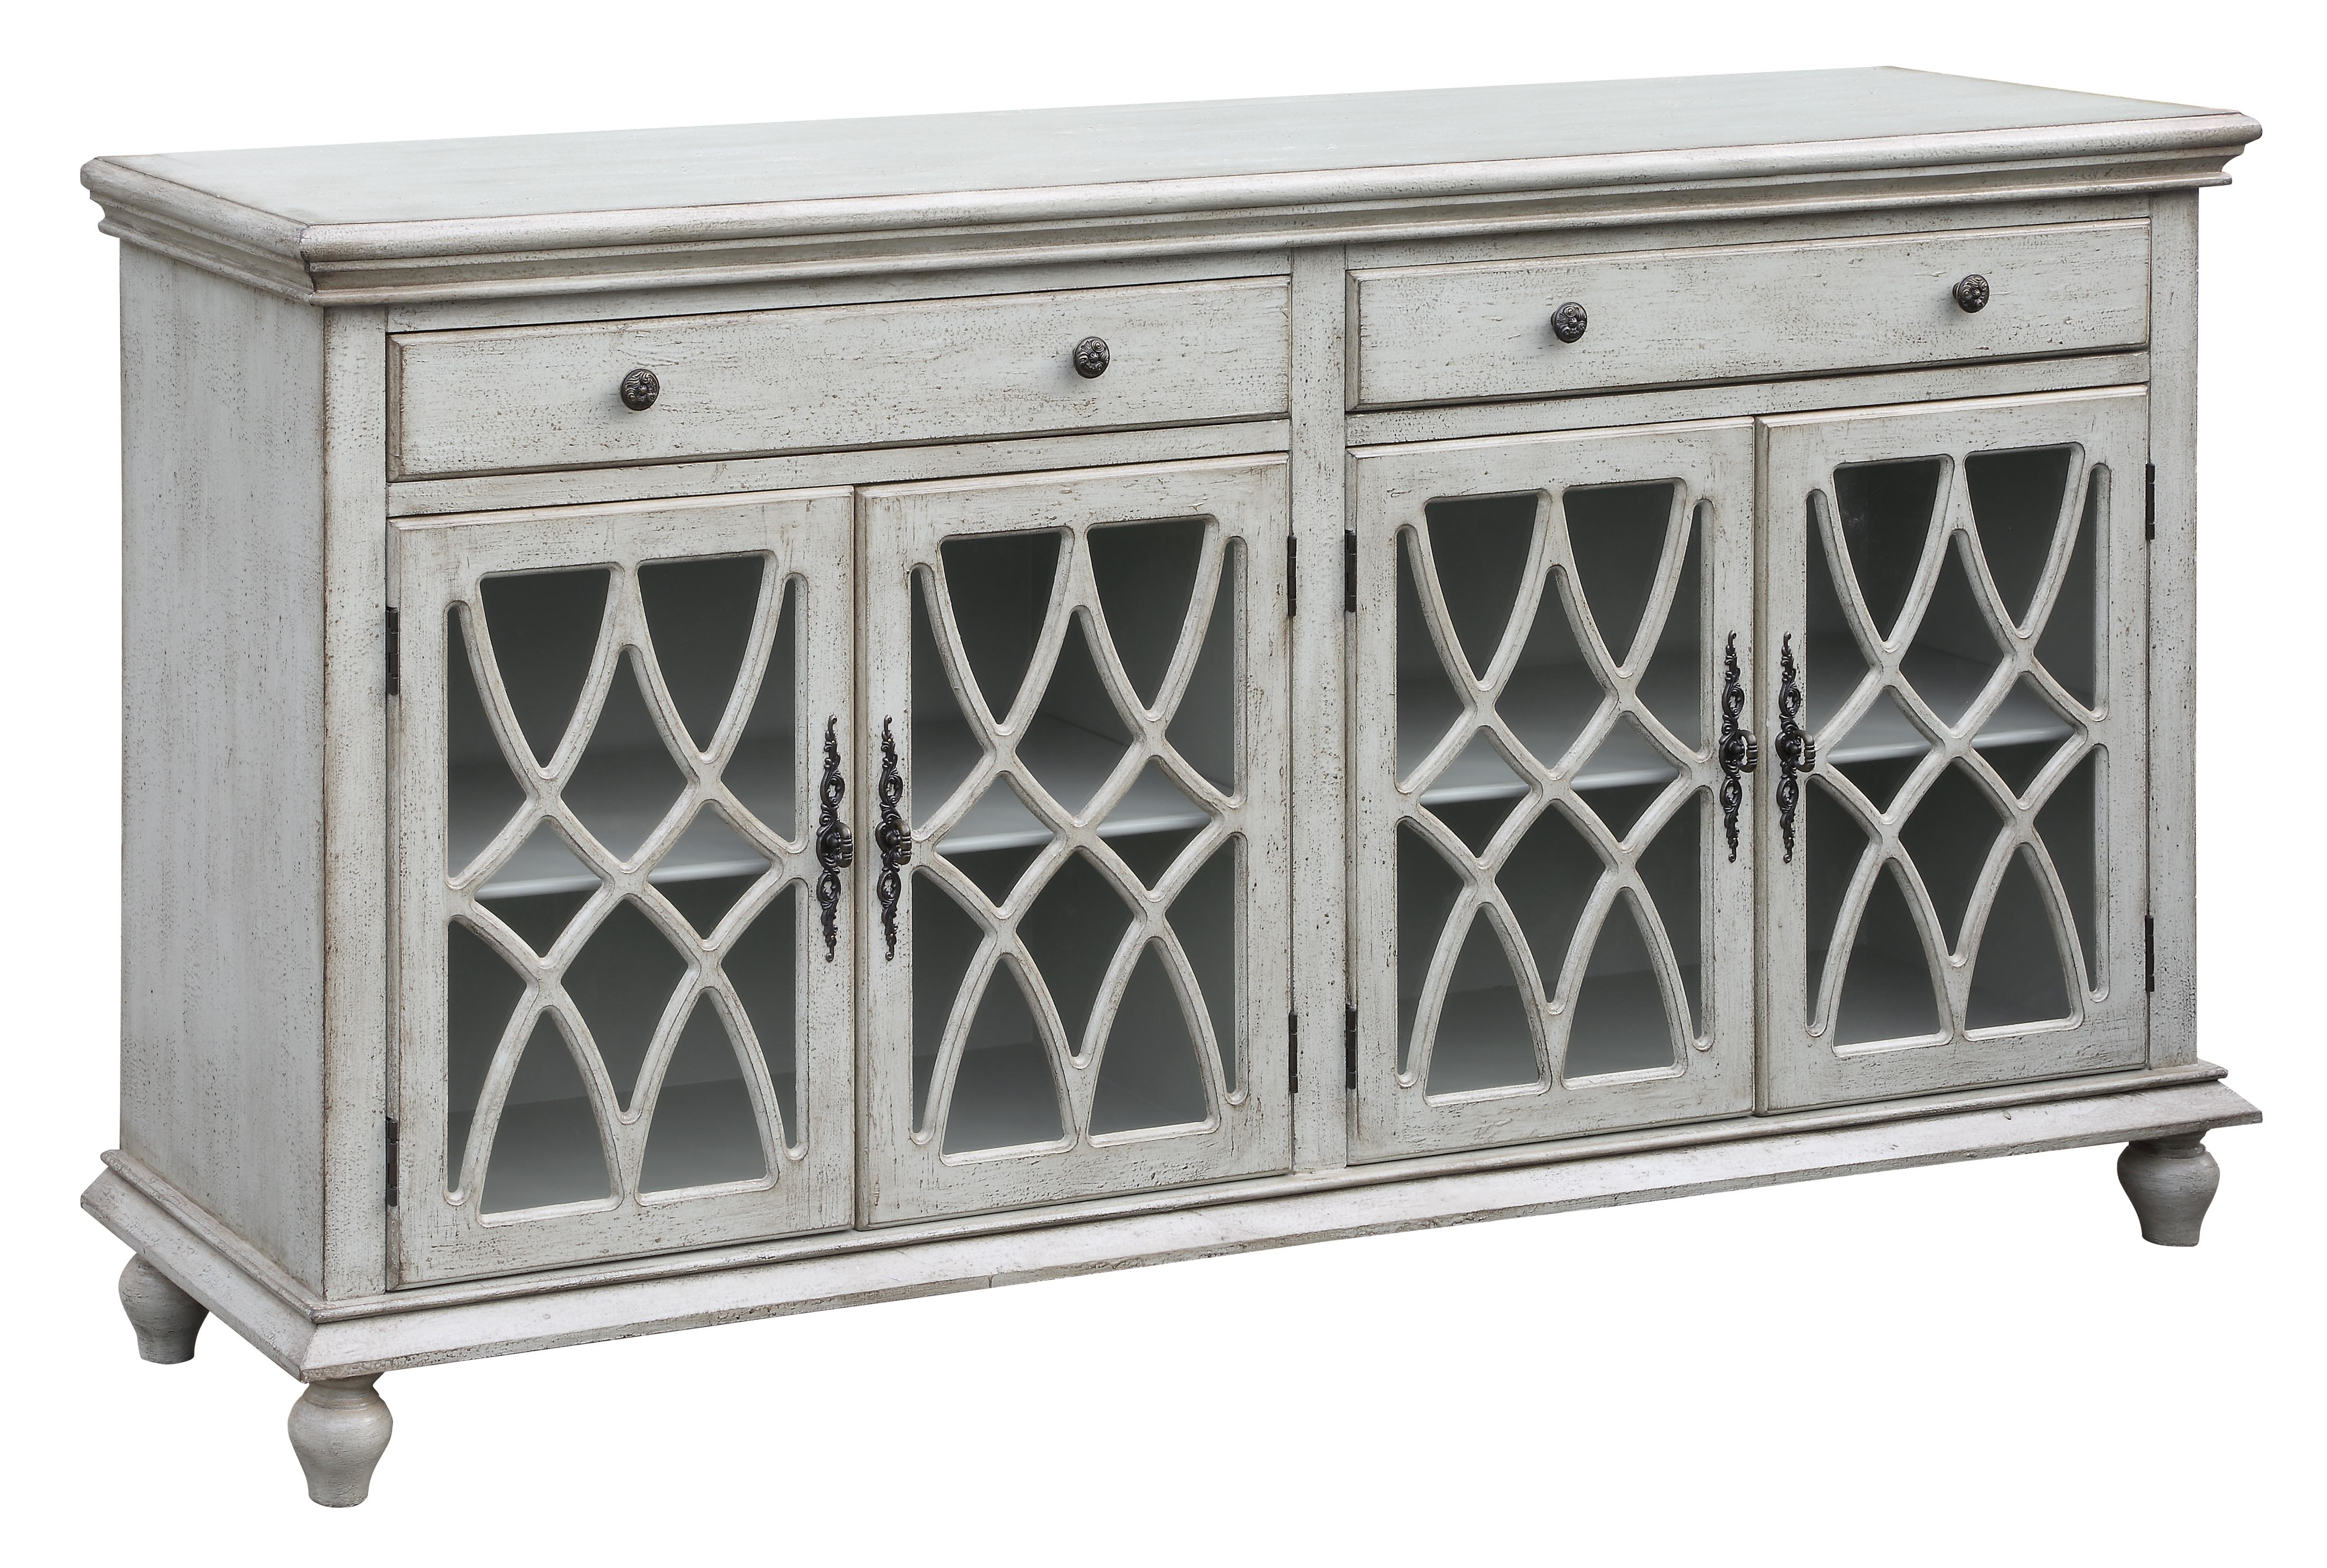 Sideboards & Credenzas | Joss & Main Within 2018 Stephen Credenzas (View 19 of 20)